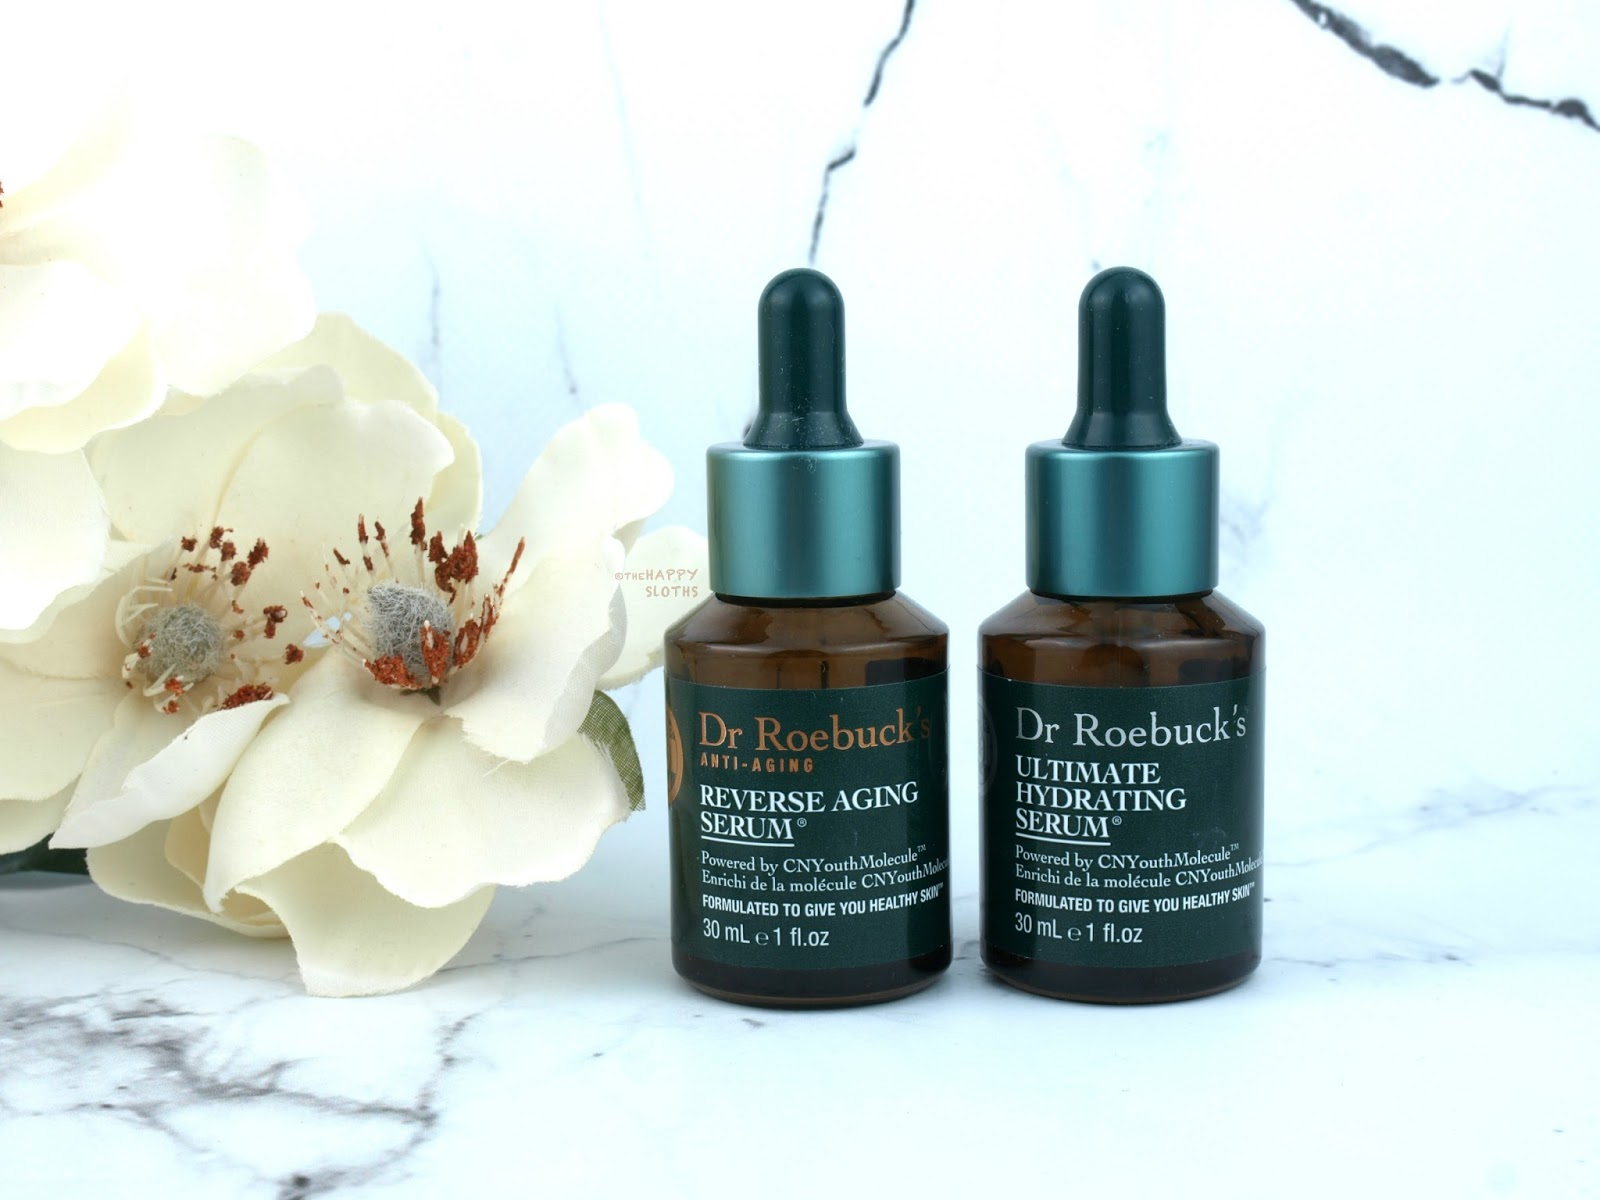 Dr. Roebuck's Reverse Aging Serum & Ultimate Hydrating Serum: Review